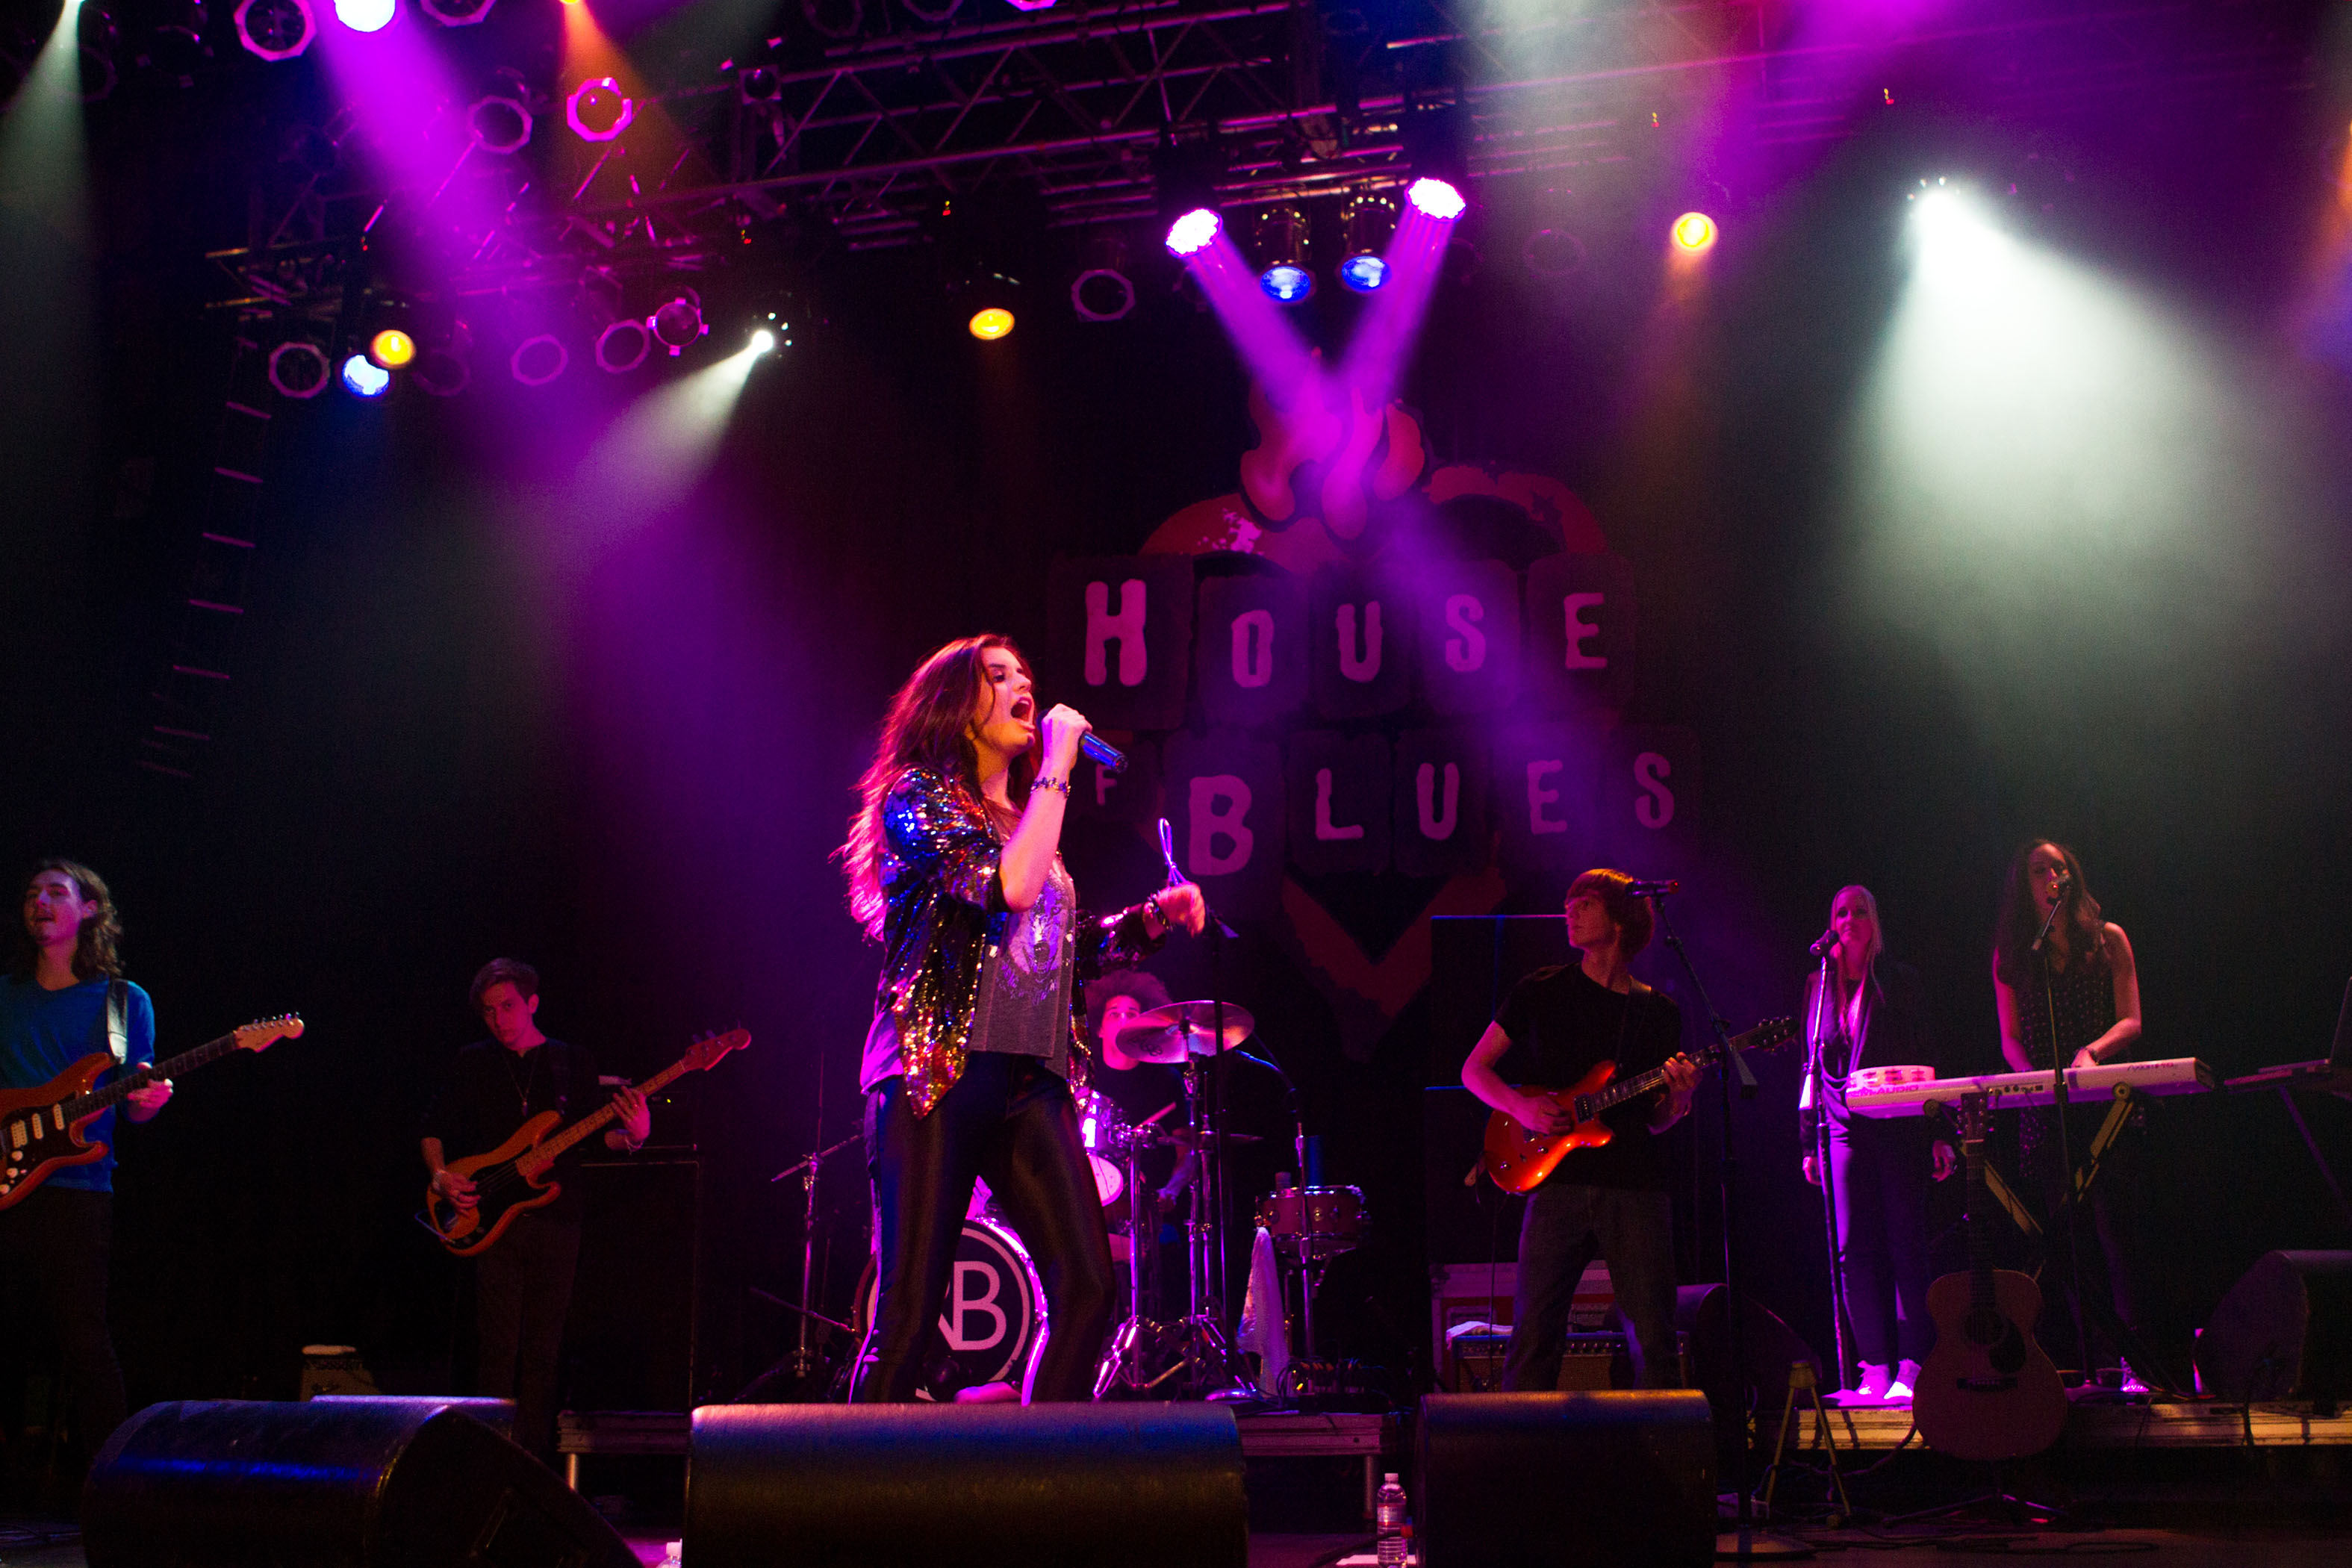 80569_Preppie_Rebecca_Black_performing_at_The_House_Of_Blues_in_Anaheim_18_122_579lo.JPG